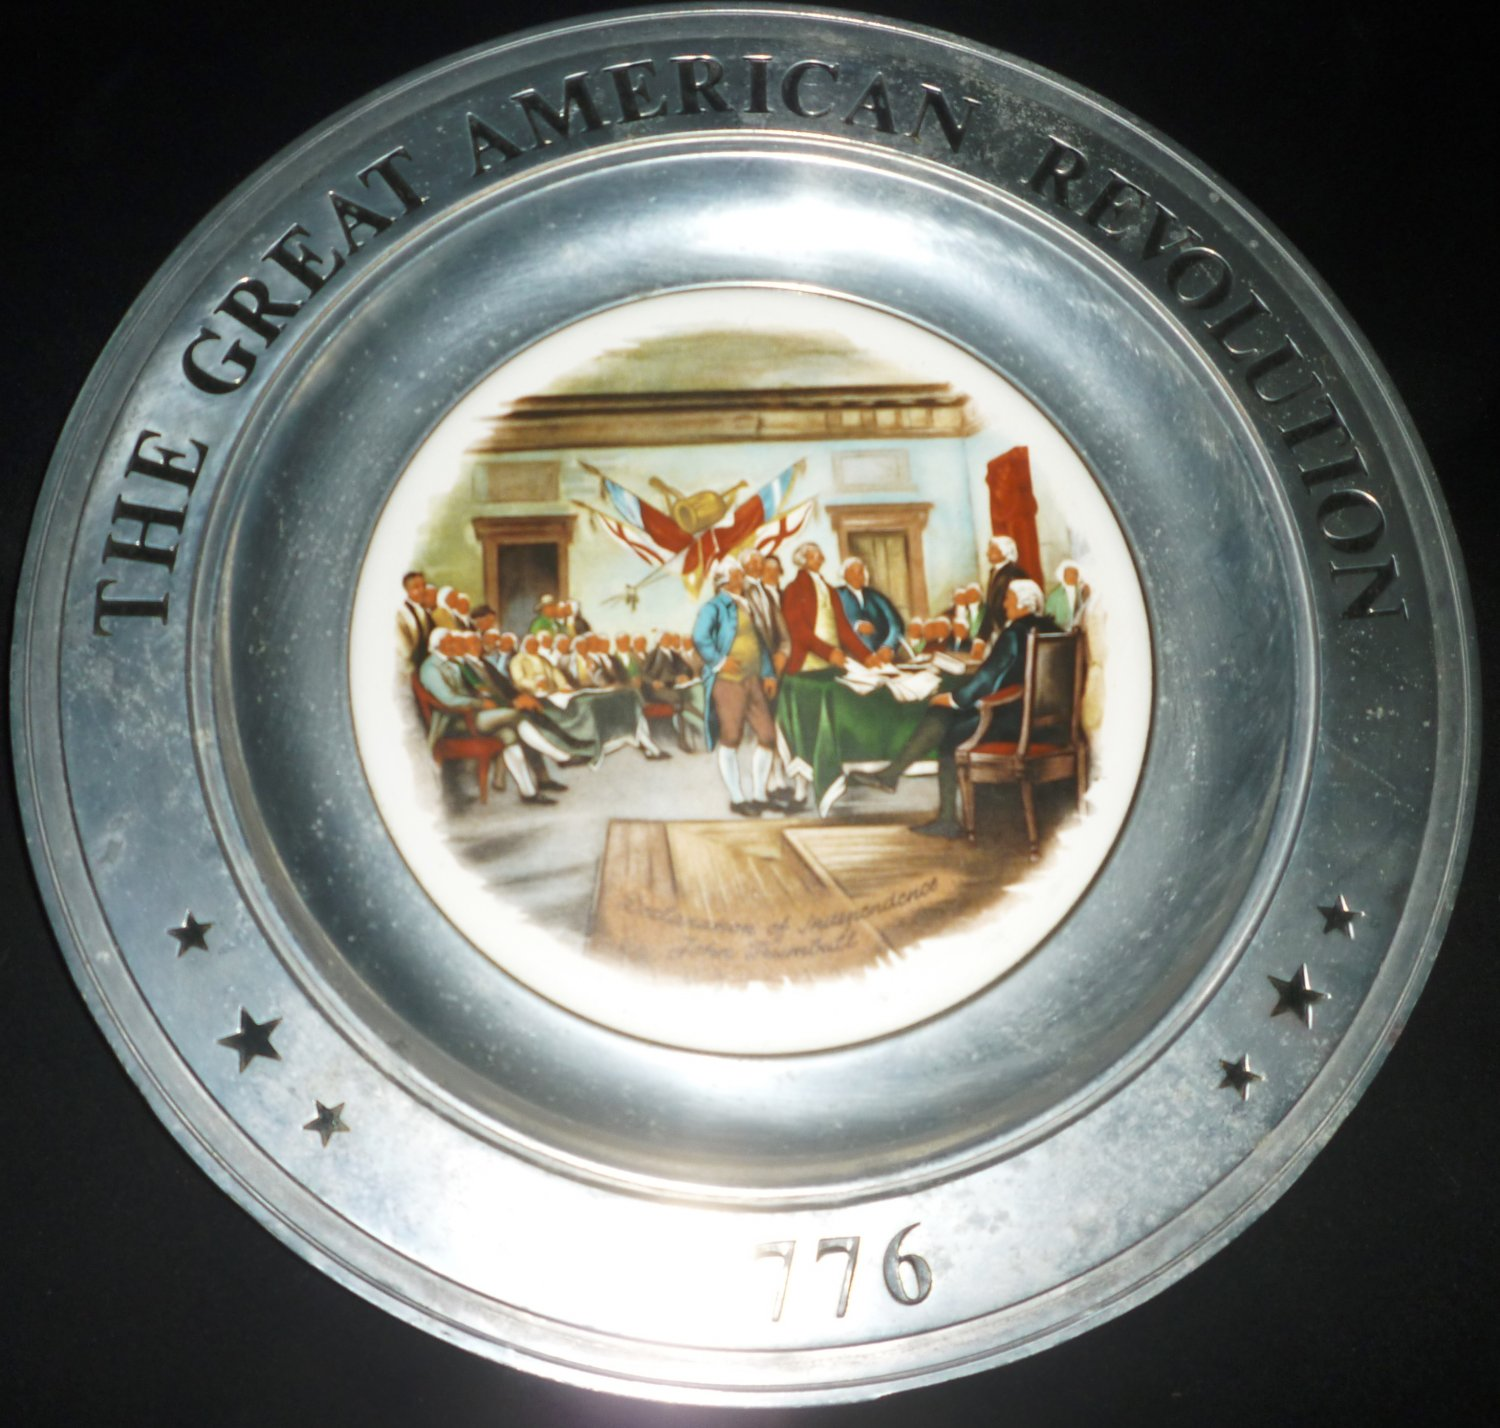 GREAT AMERICAN REVOLUTION CANTON PVK PEWTER PLATE DECLARATION OF INDEPENDANCE